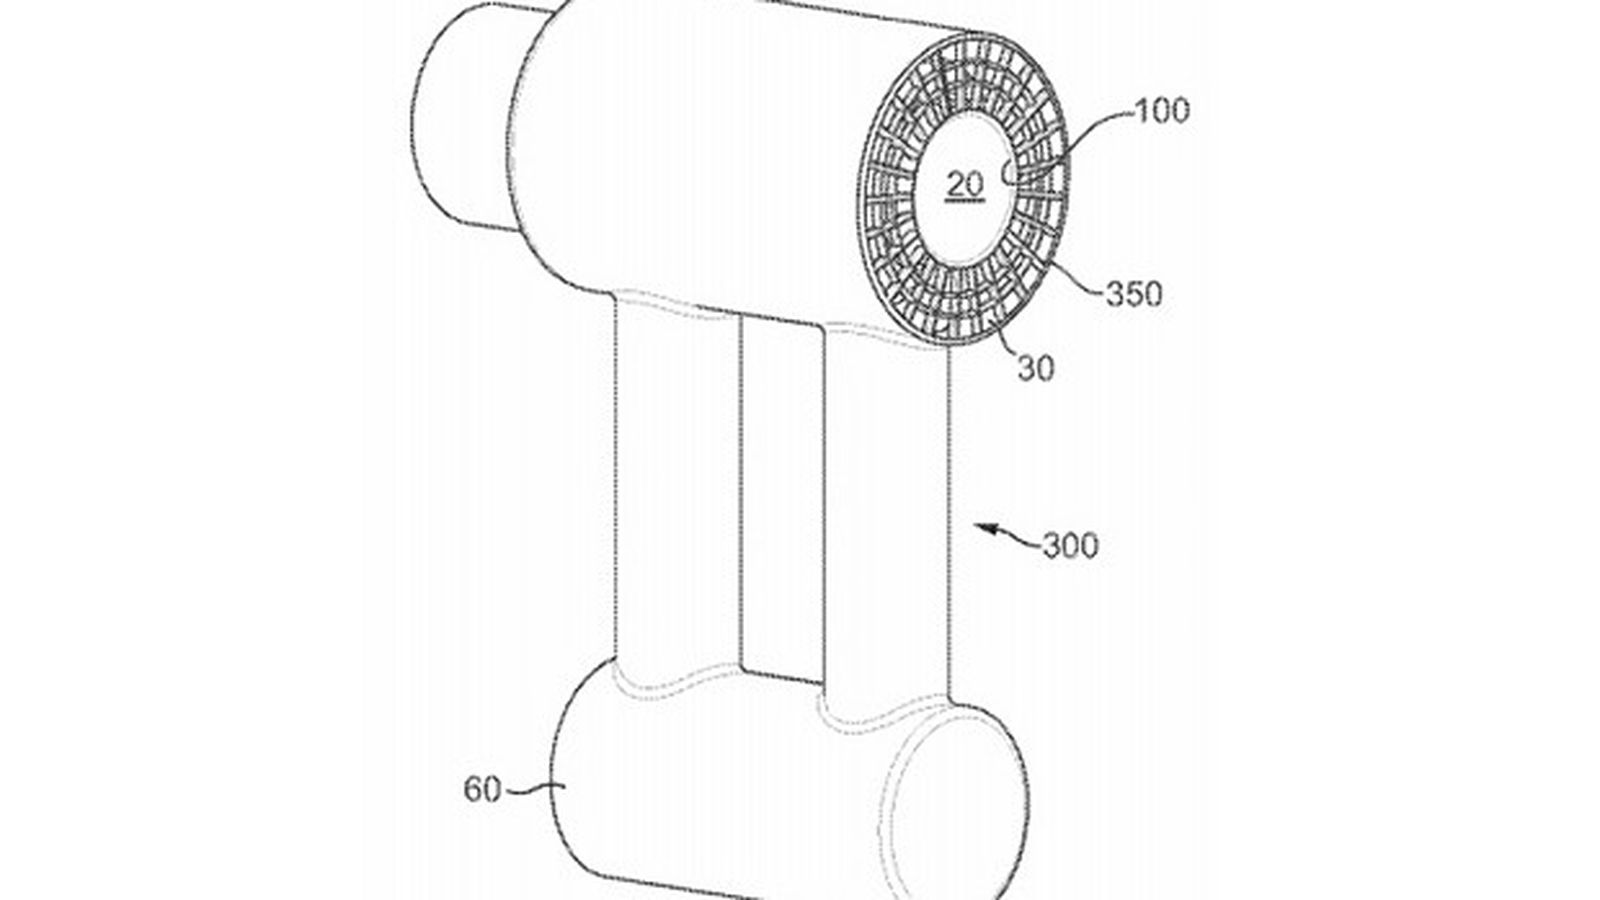 Dyson wants to silence the hair dryer, according to patent